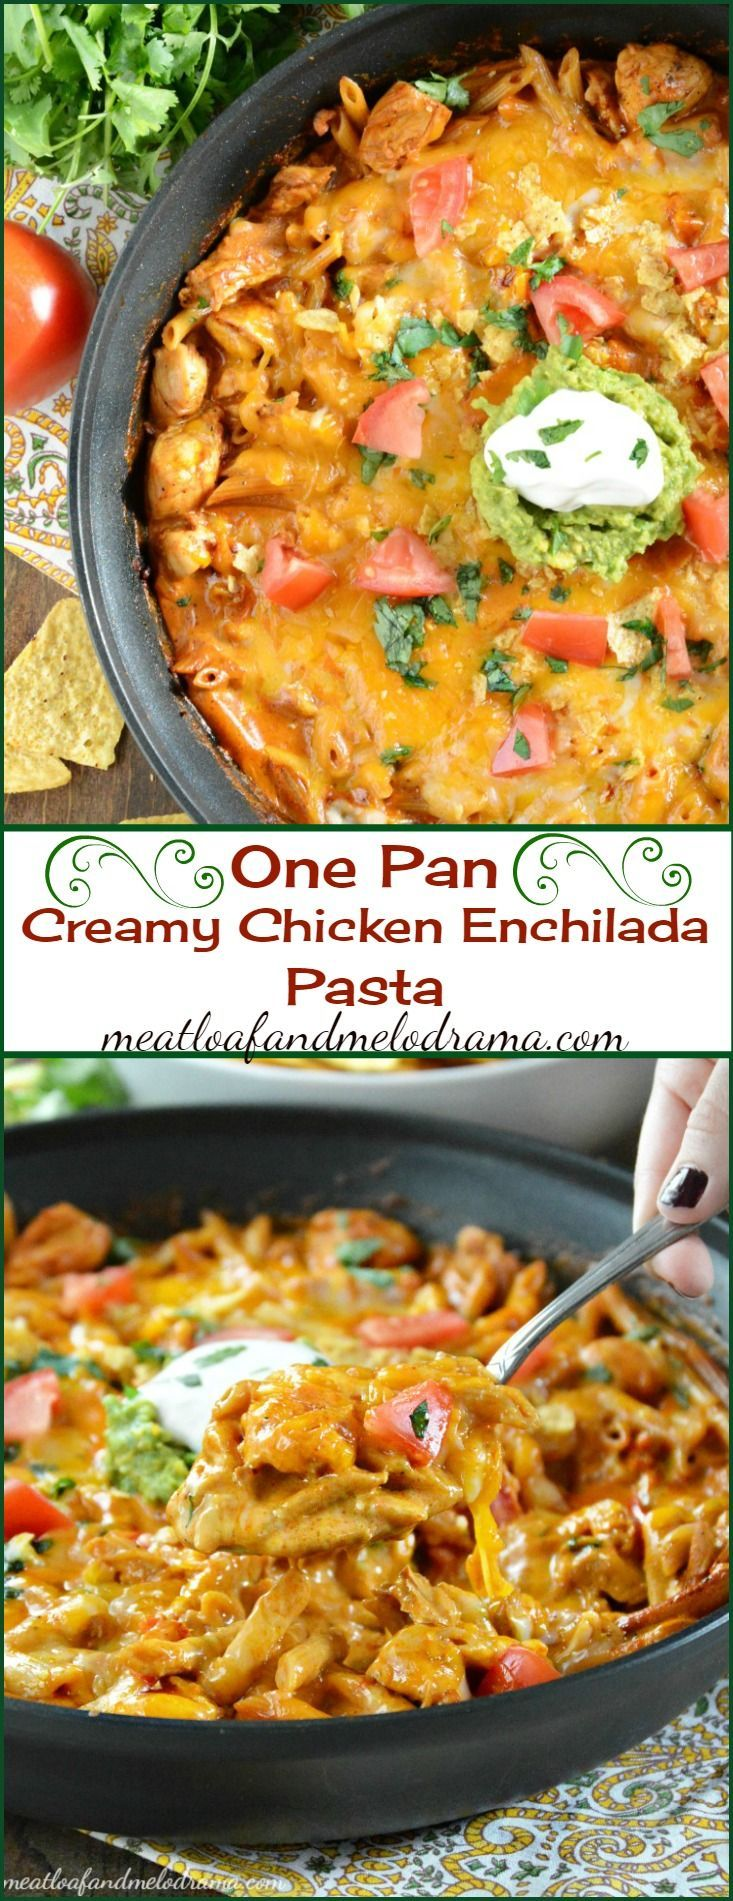 One Pan Creamy Chicken Enchilada Pasta - An easy one dish meal perfect for busy weeknights!